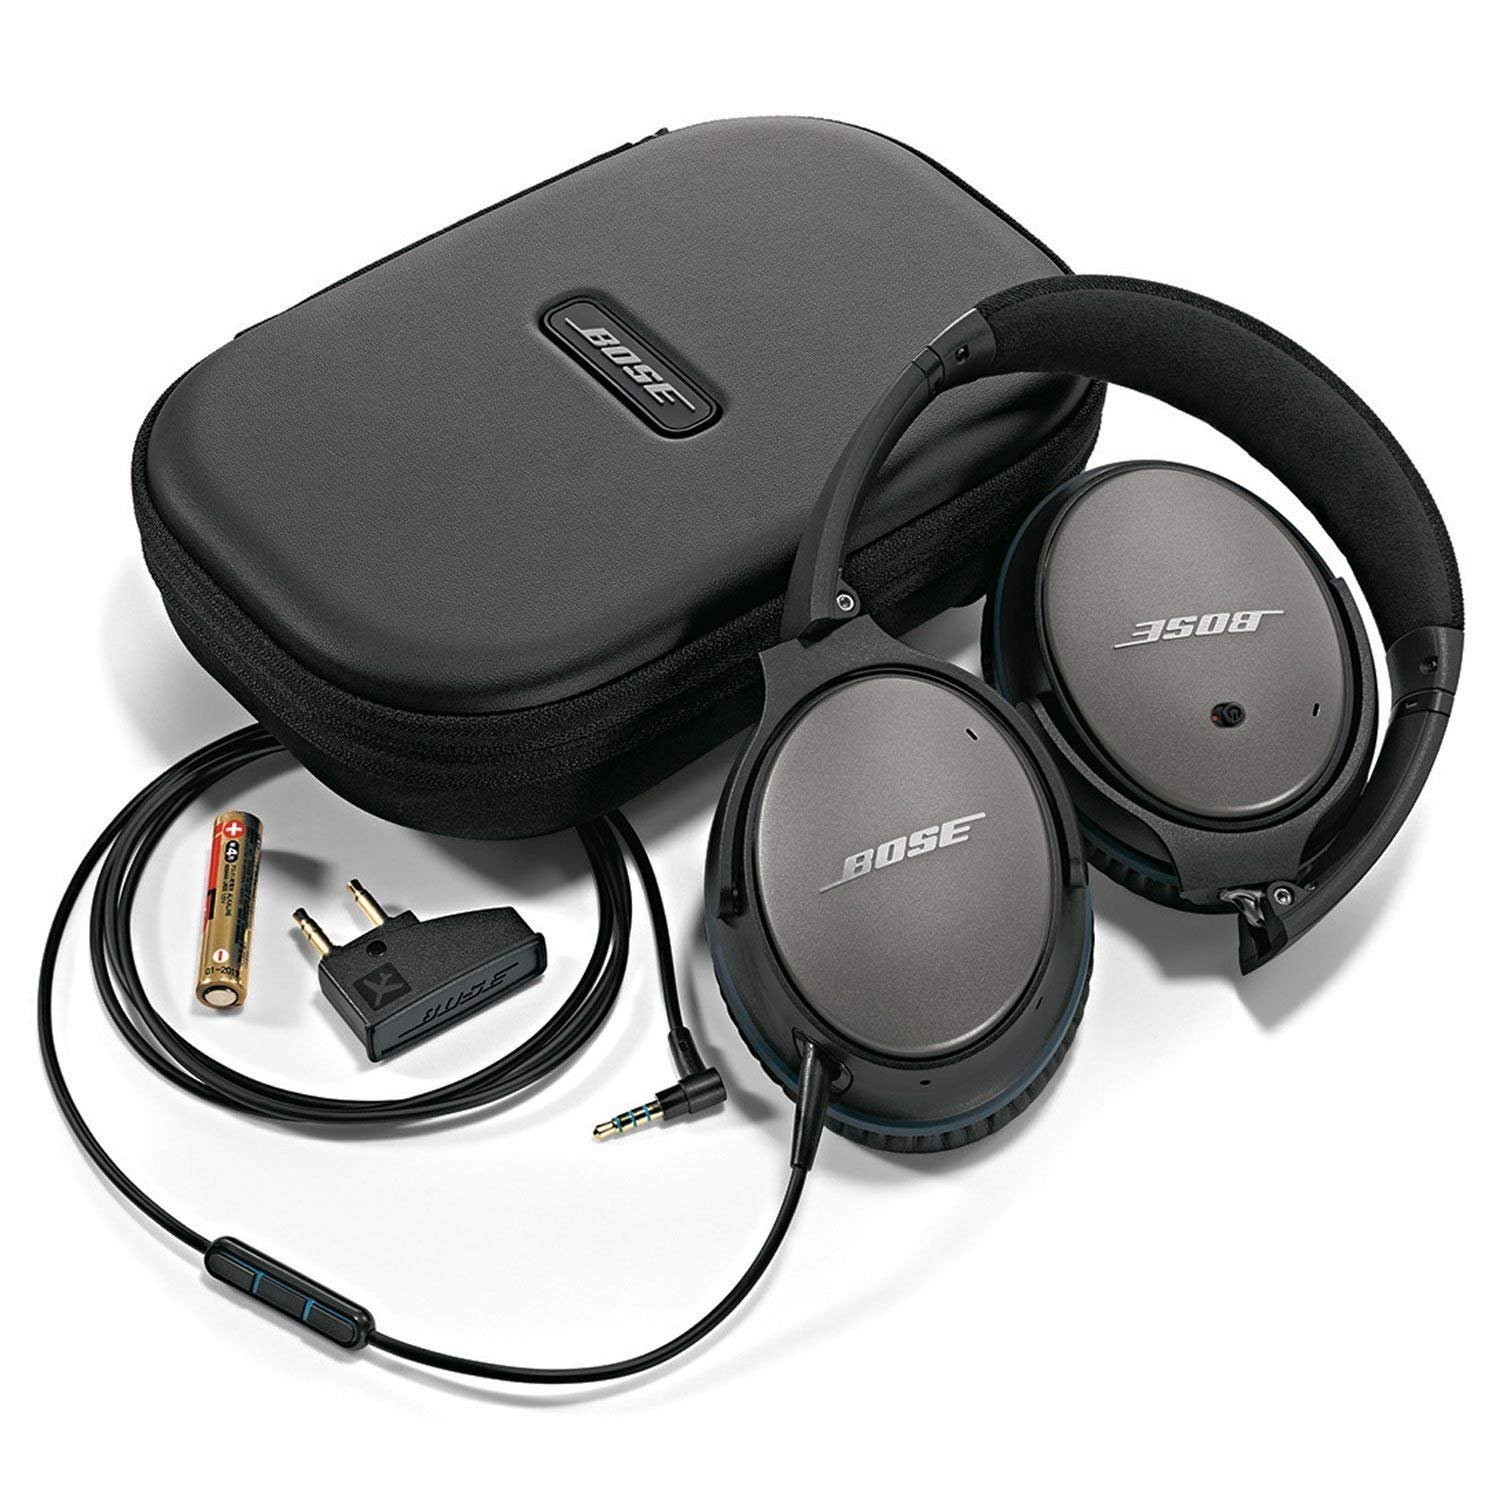 Bose Quietcomfort 25 Acoustic Noise Cancelling Electronics Jgos17 Sony Headphones Mdr Zx110 Ap Black